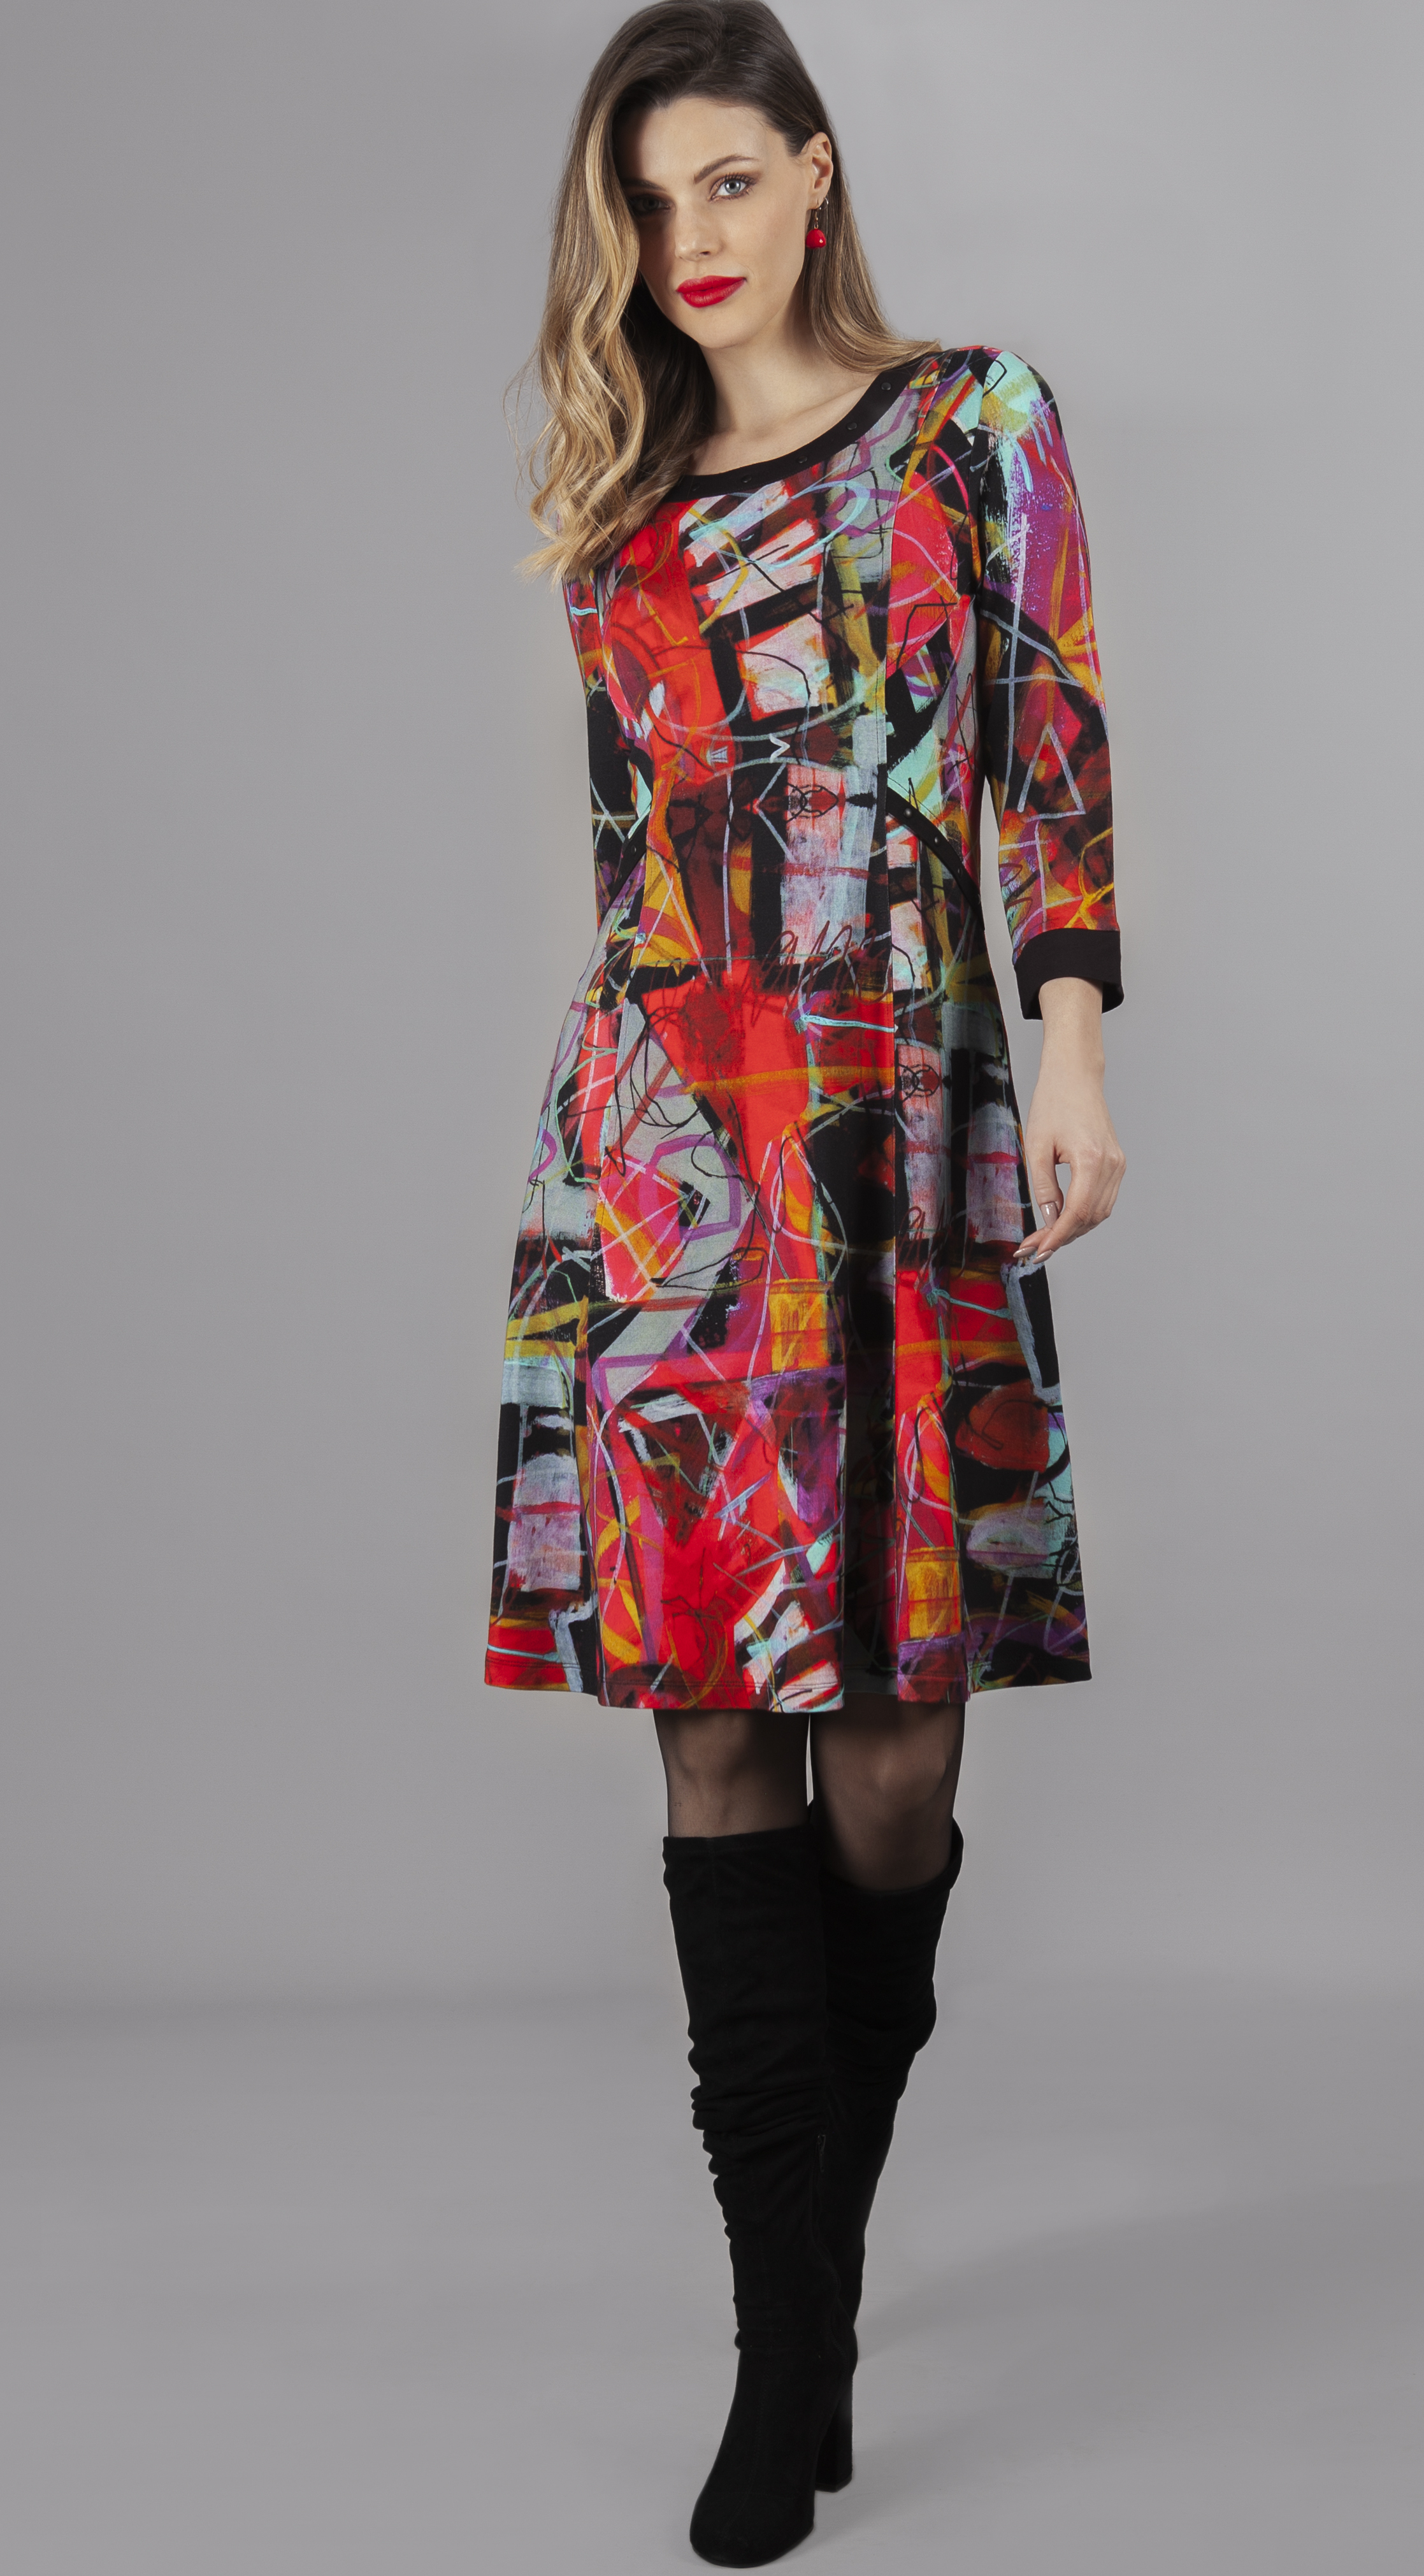 Simply Art Dolcezza: Red 3 Graffiti Abstract Art Flared Dress (2 Left!) DOLCEZZA_SIMPLYART_70626